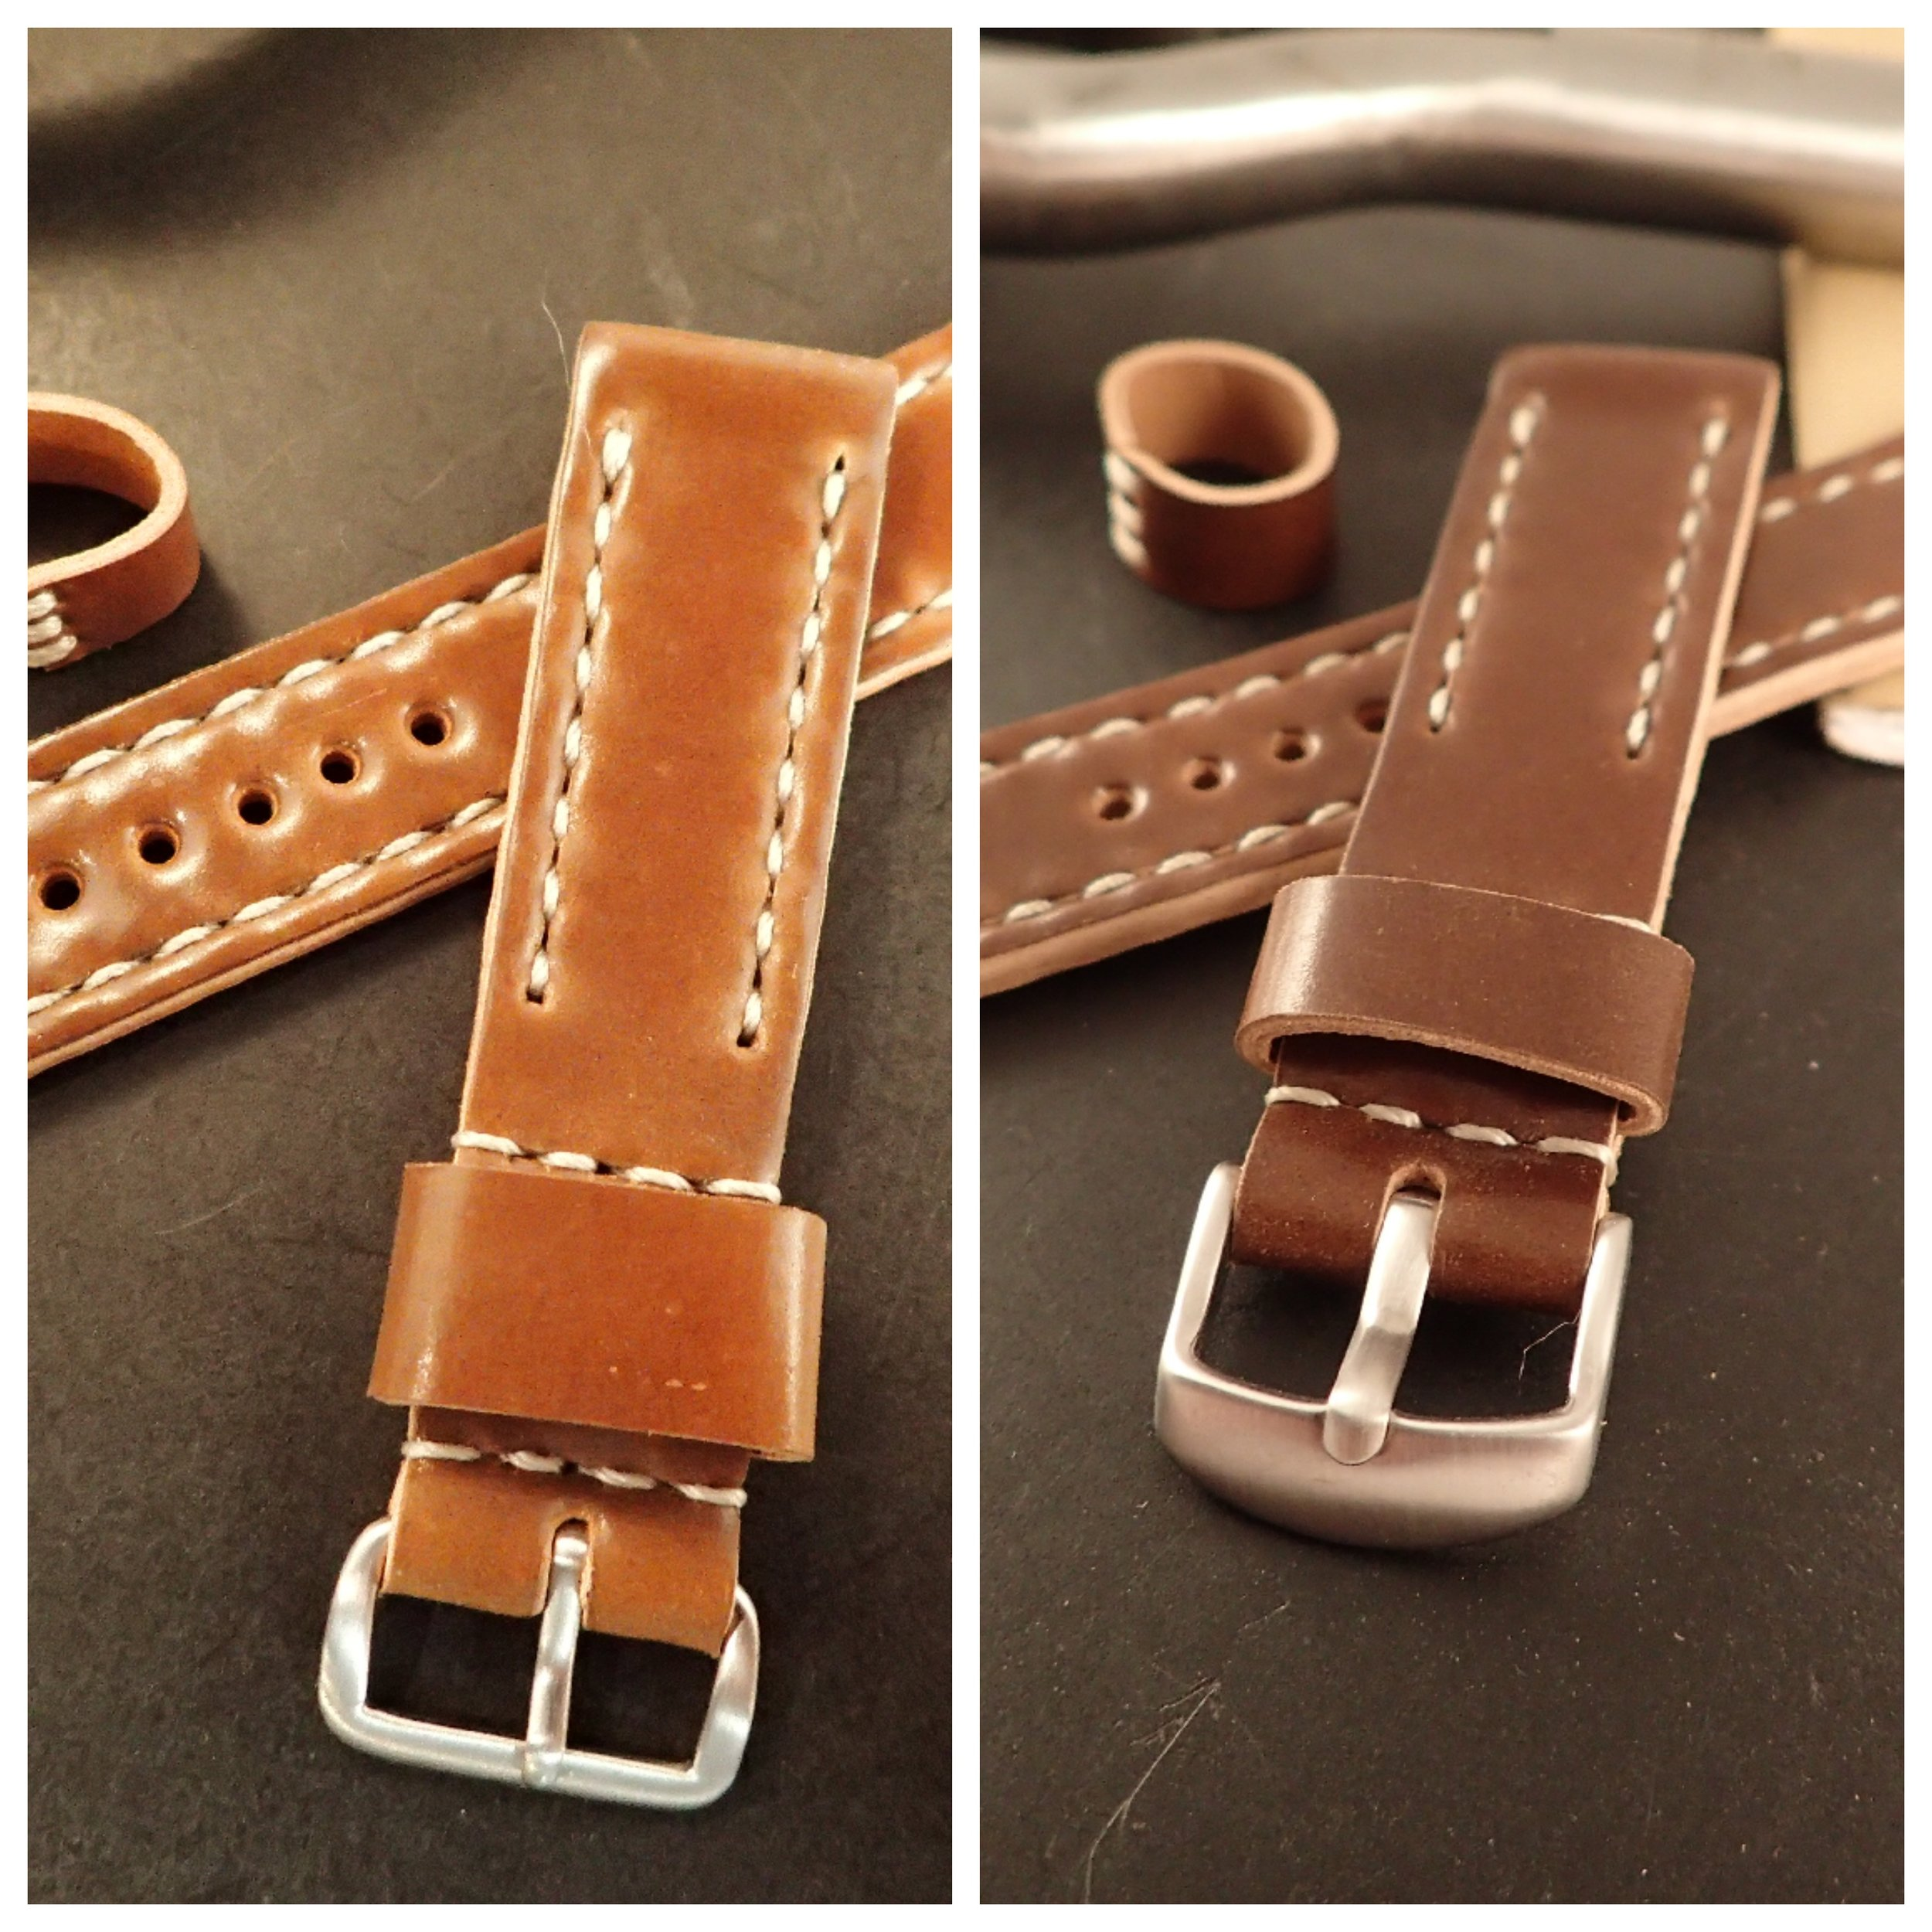 Your basic buckle choices are sewn-in-place NATO-style (left) and removable Crescent-style (right). Both are available in polished or brushed finishes.